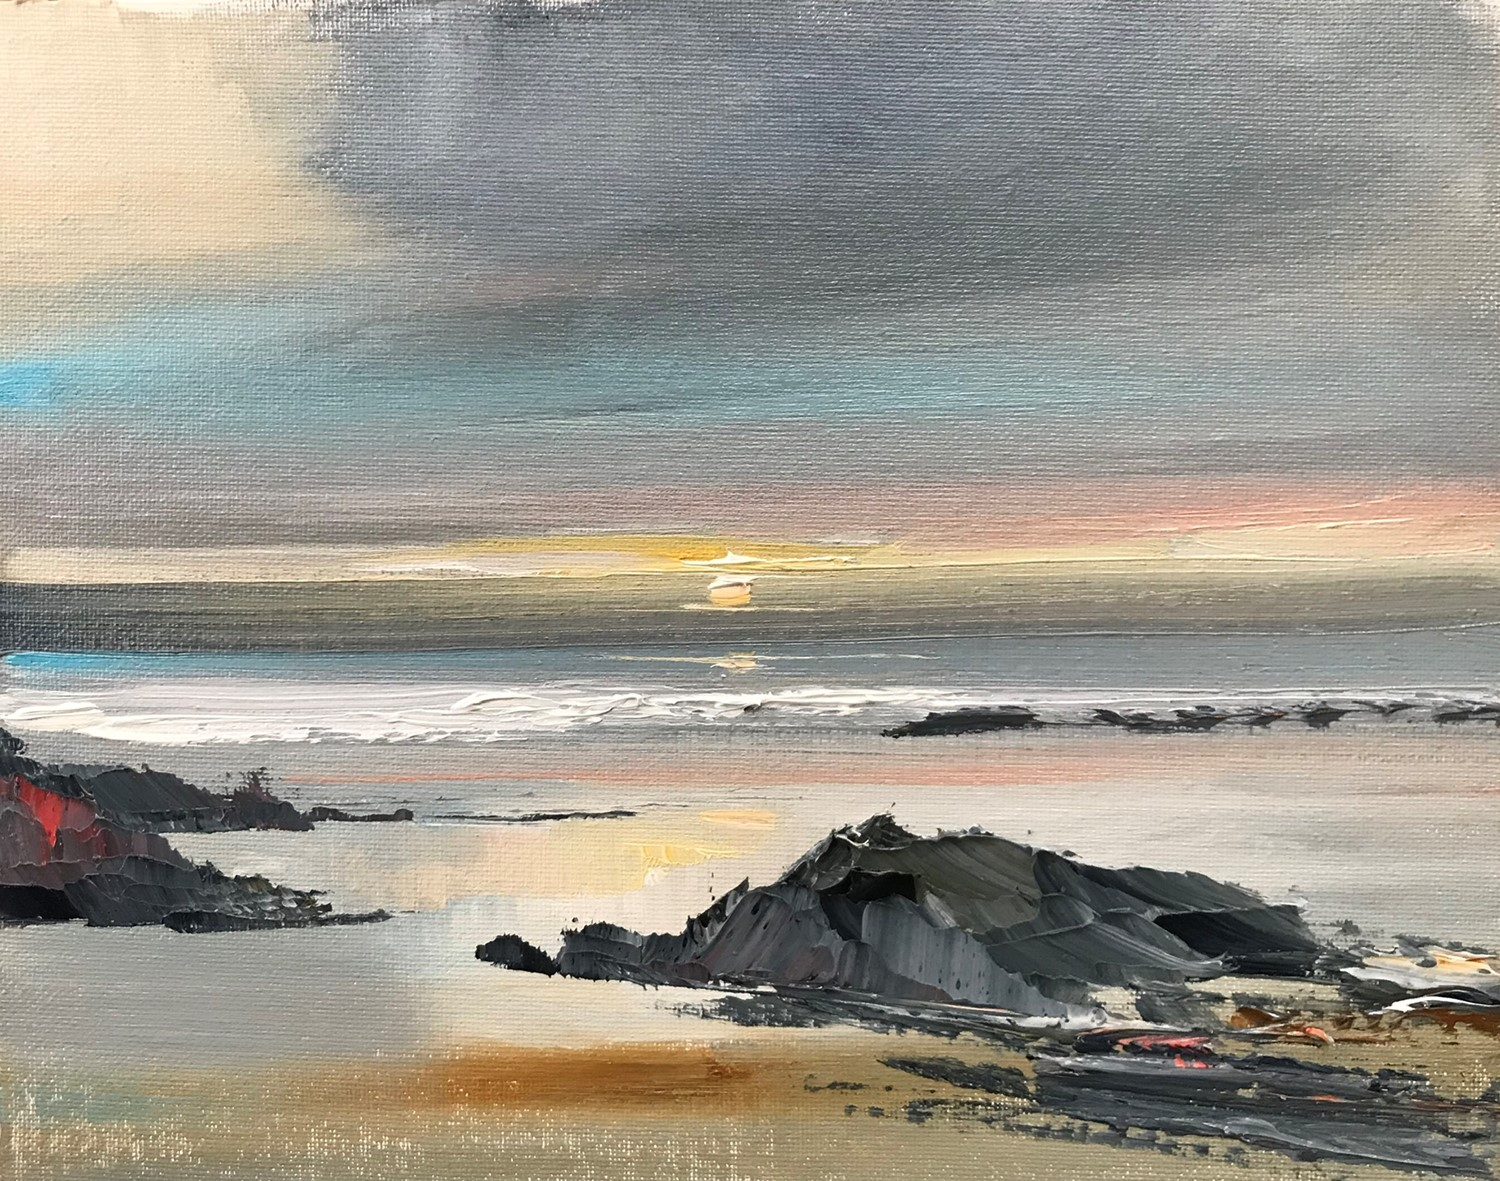 'The last stroll of the day' by artist Rosanne Barr